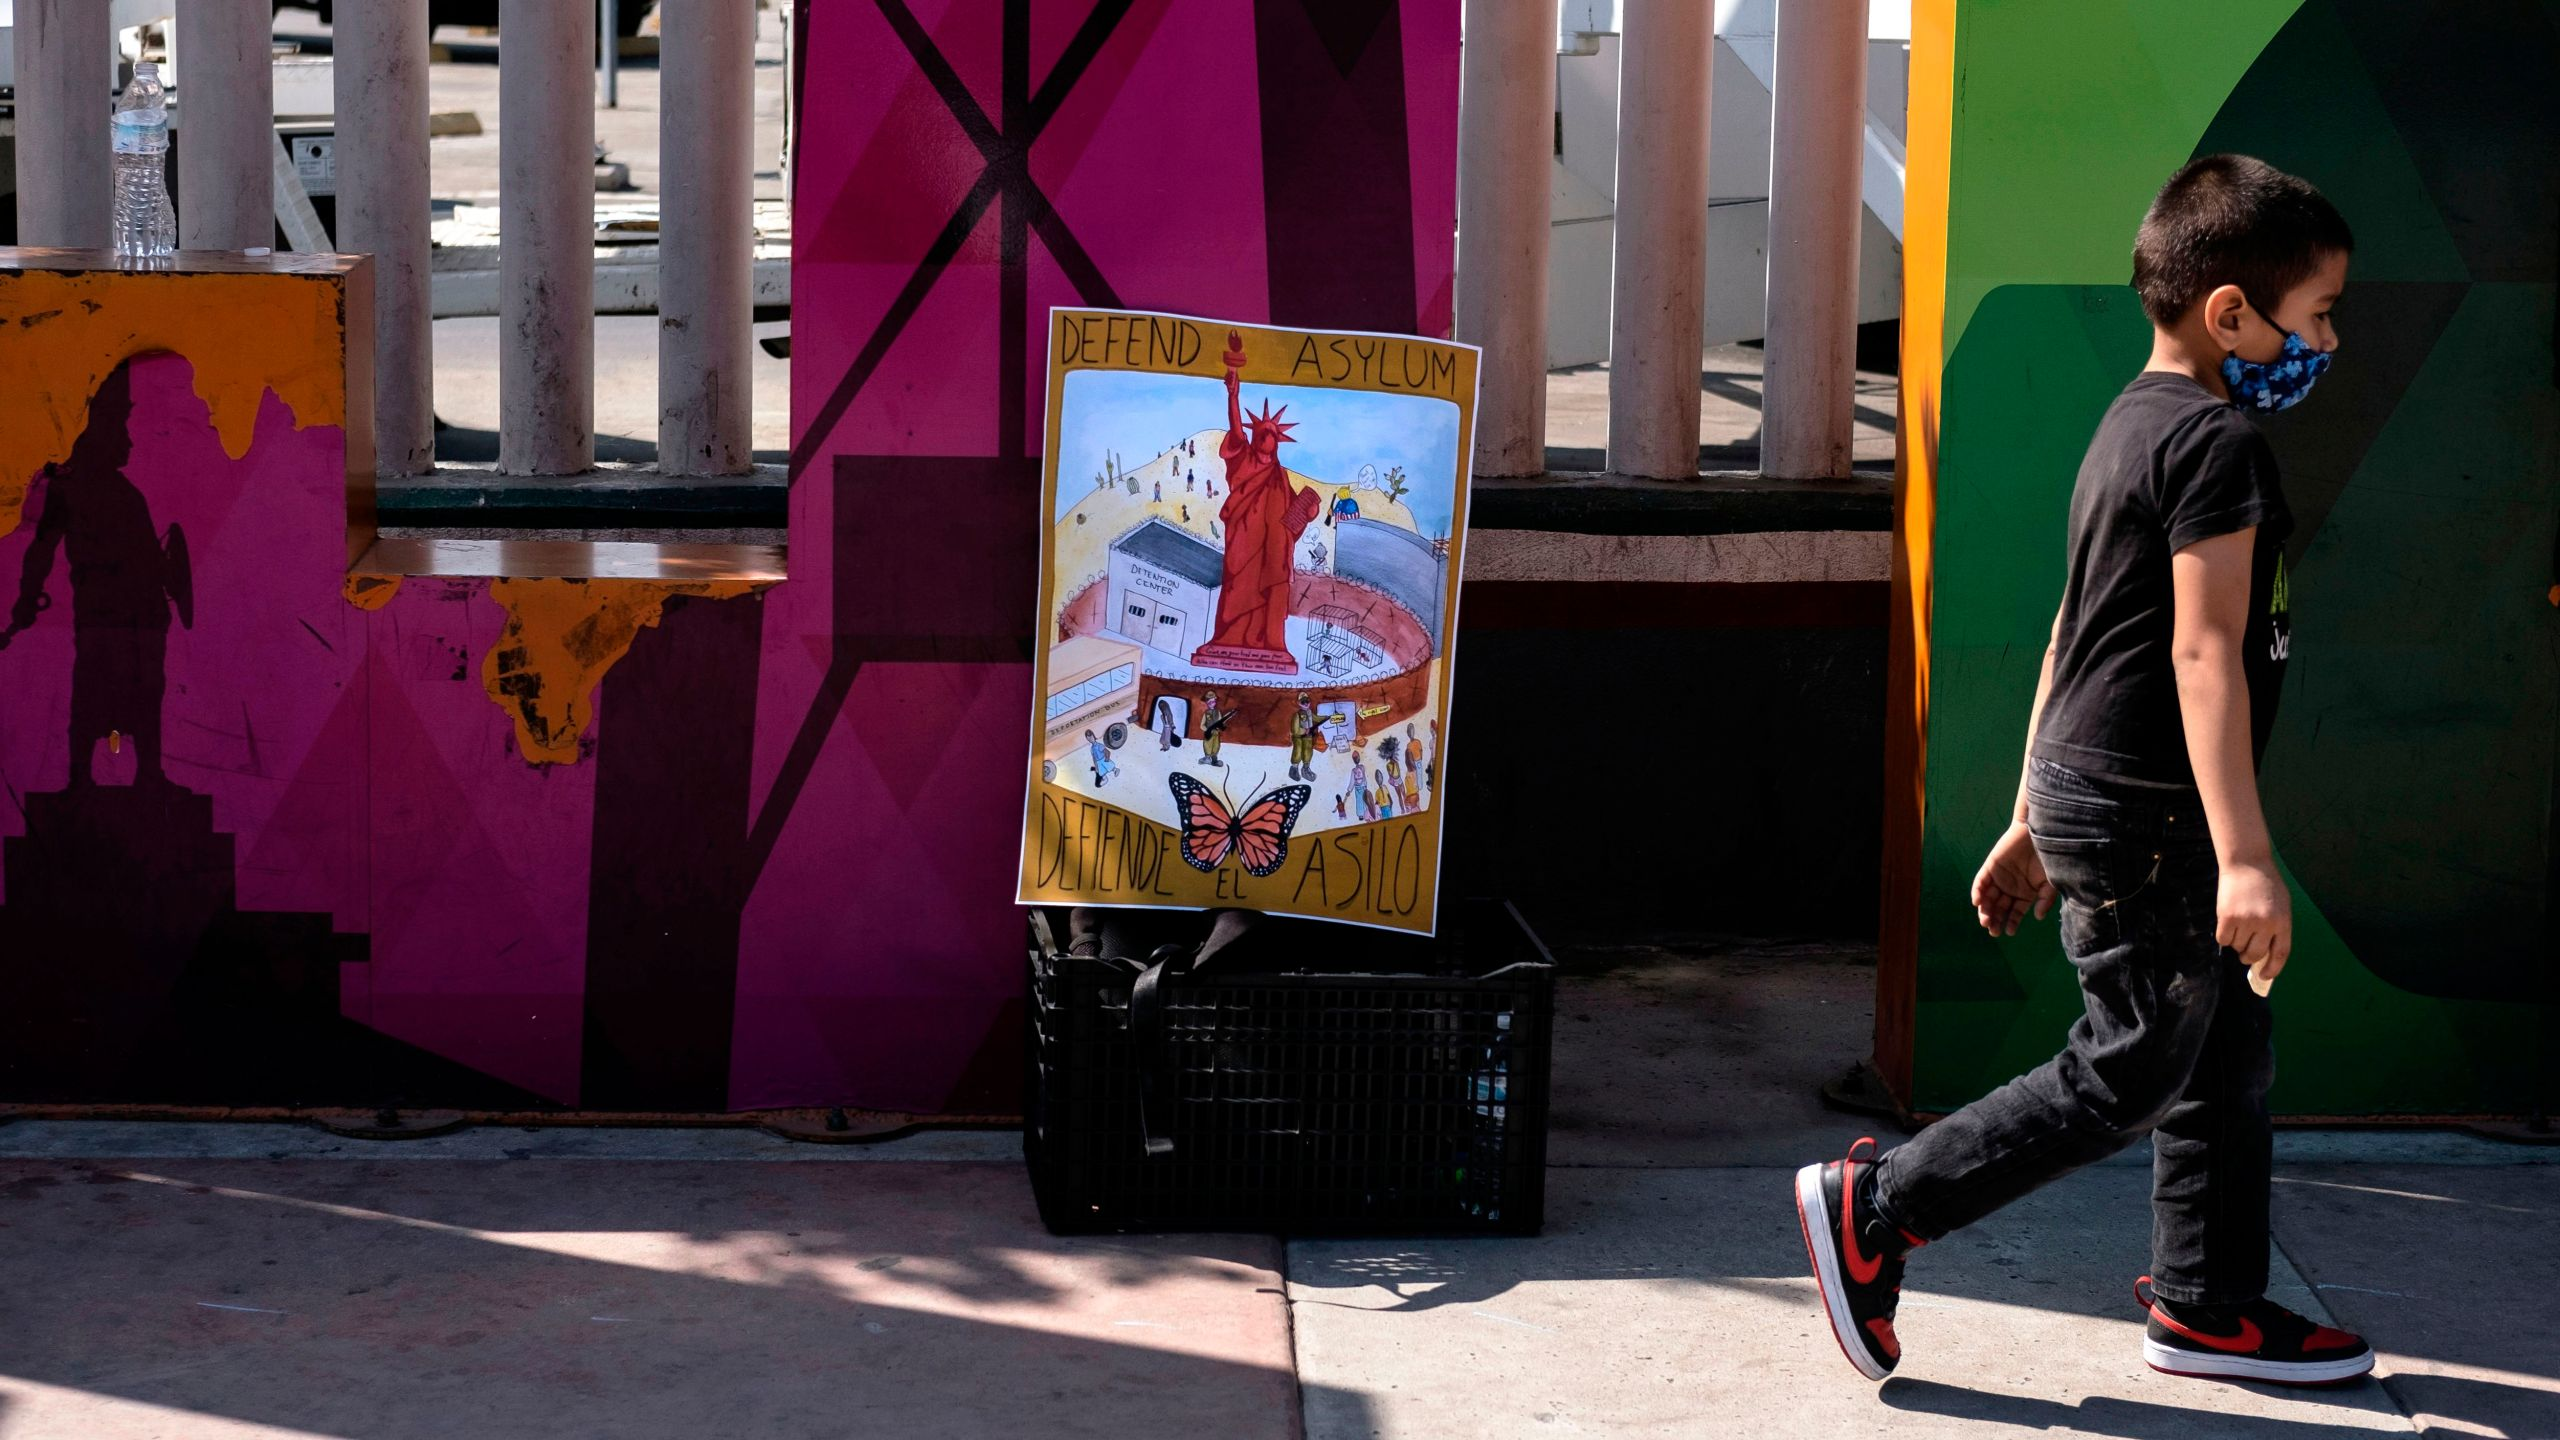 A child takes part in a protest of migrants and human rights activists against U.S. and Mexican migration policies at the San Ysidro crossing port, in Tijuana, Baja California state, Mexico, on the border with the U.S., on Oct. 21, 2020, amid the new coronavirus pandemic. (GUILLERMO ARIAS/AFP via Getty Images)